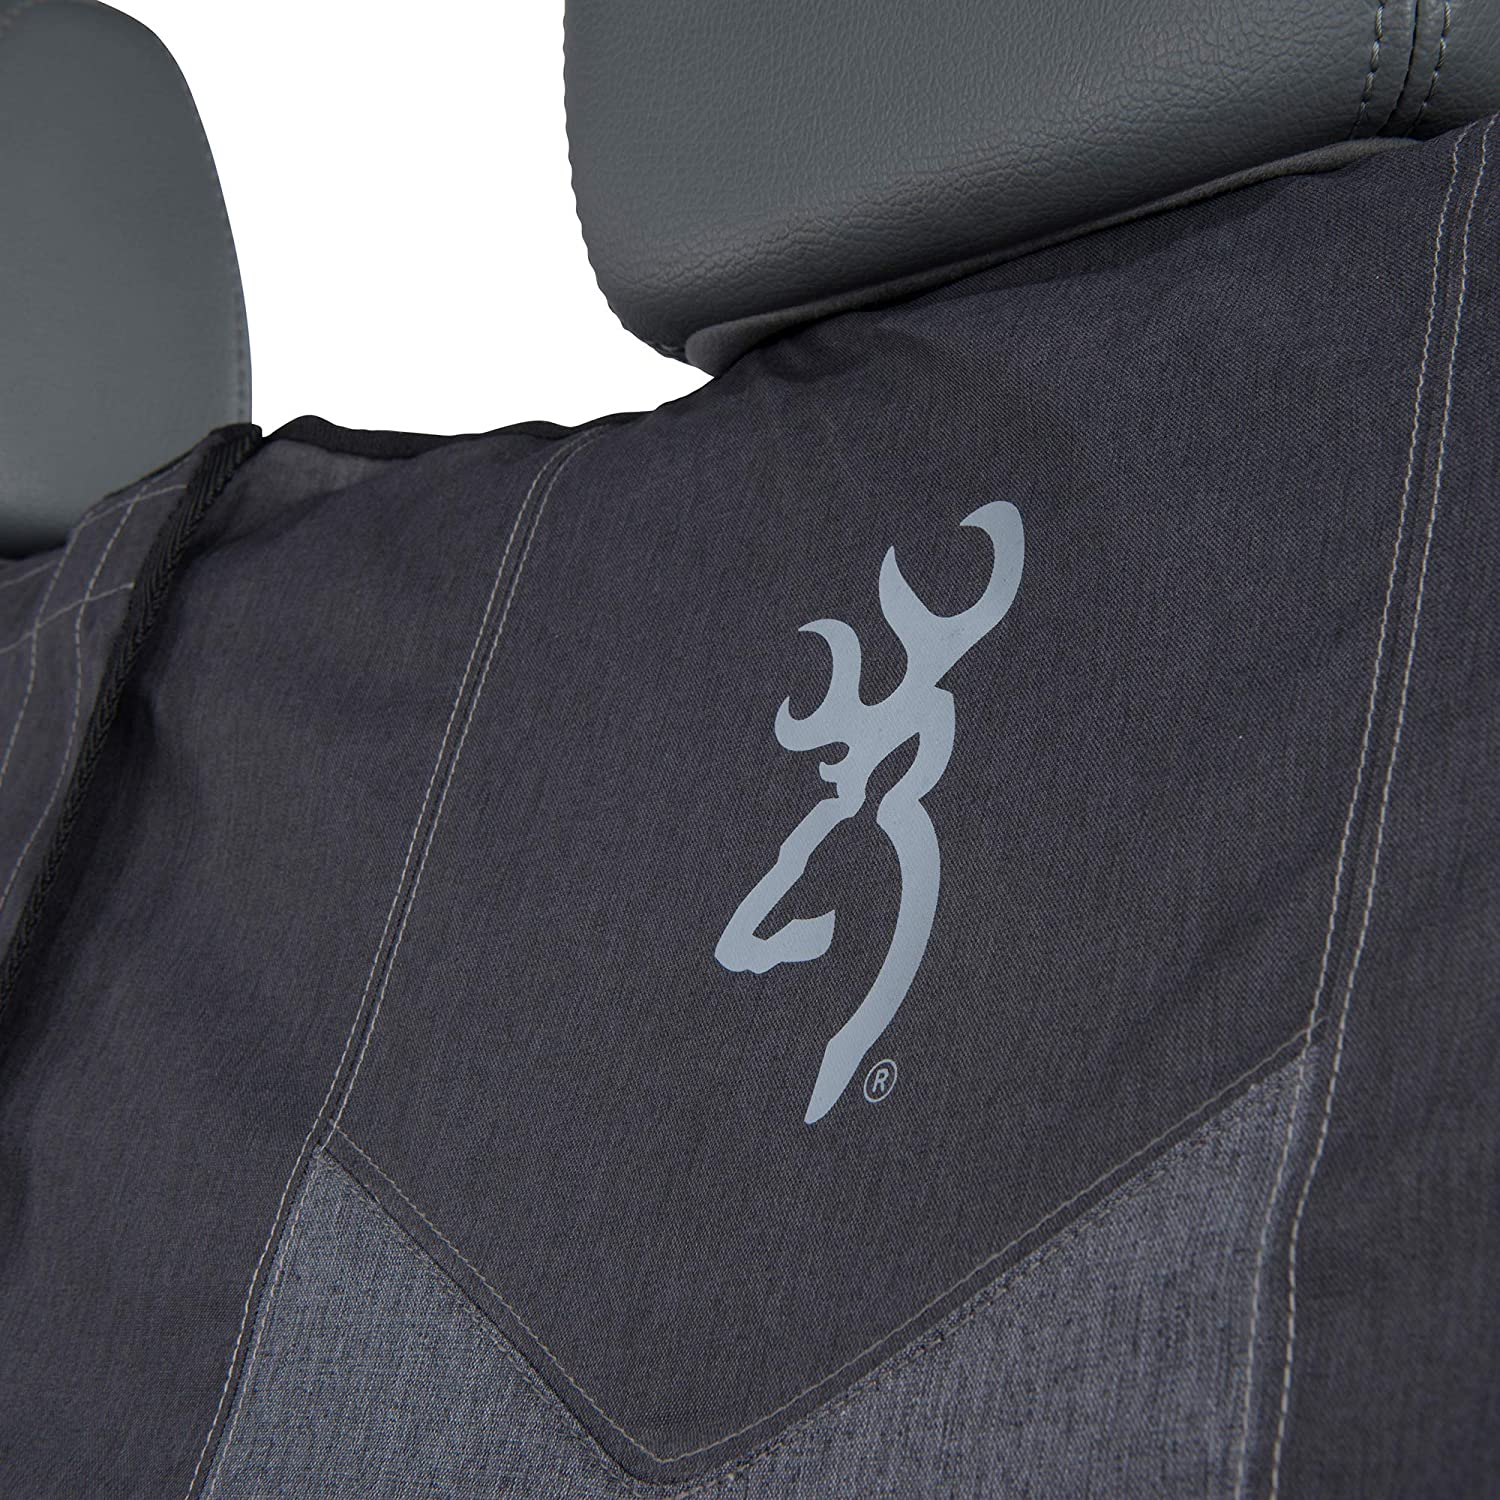 C000125500199 Heather Black SPG Bench Browning Camo Seat Cover Full Size Signature Products Group